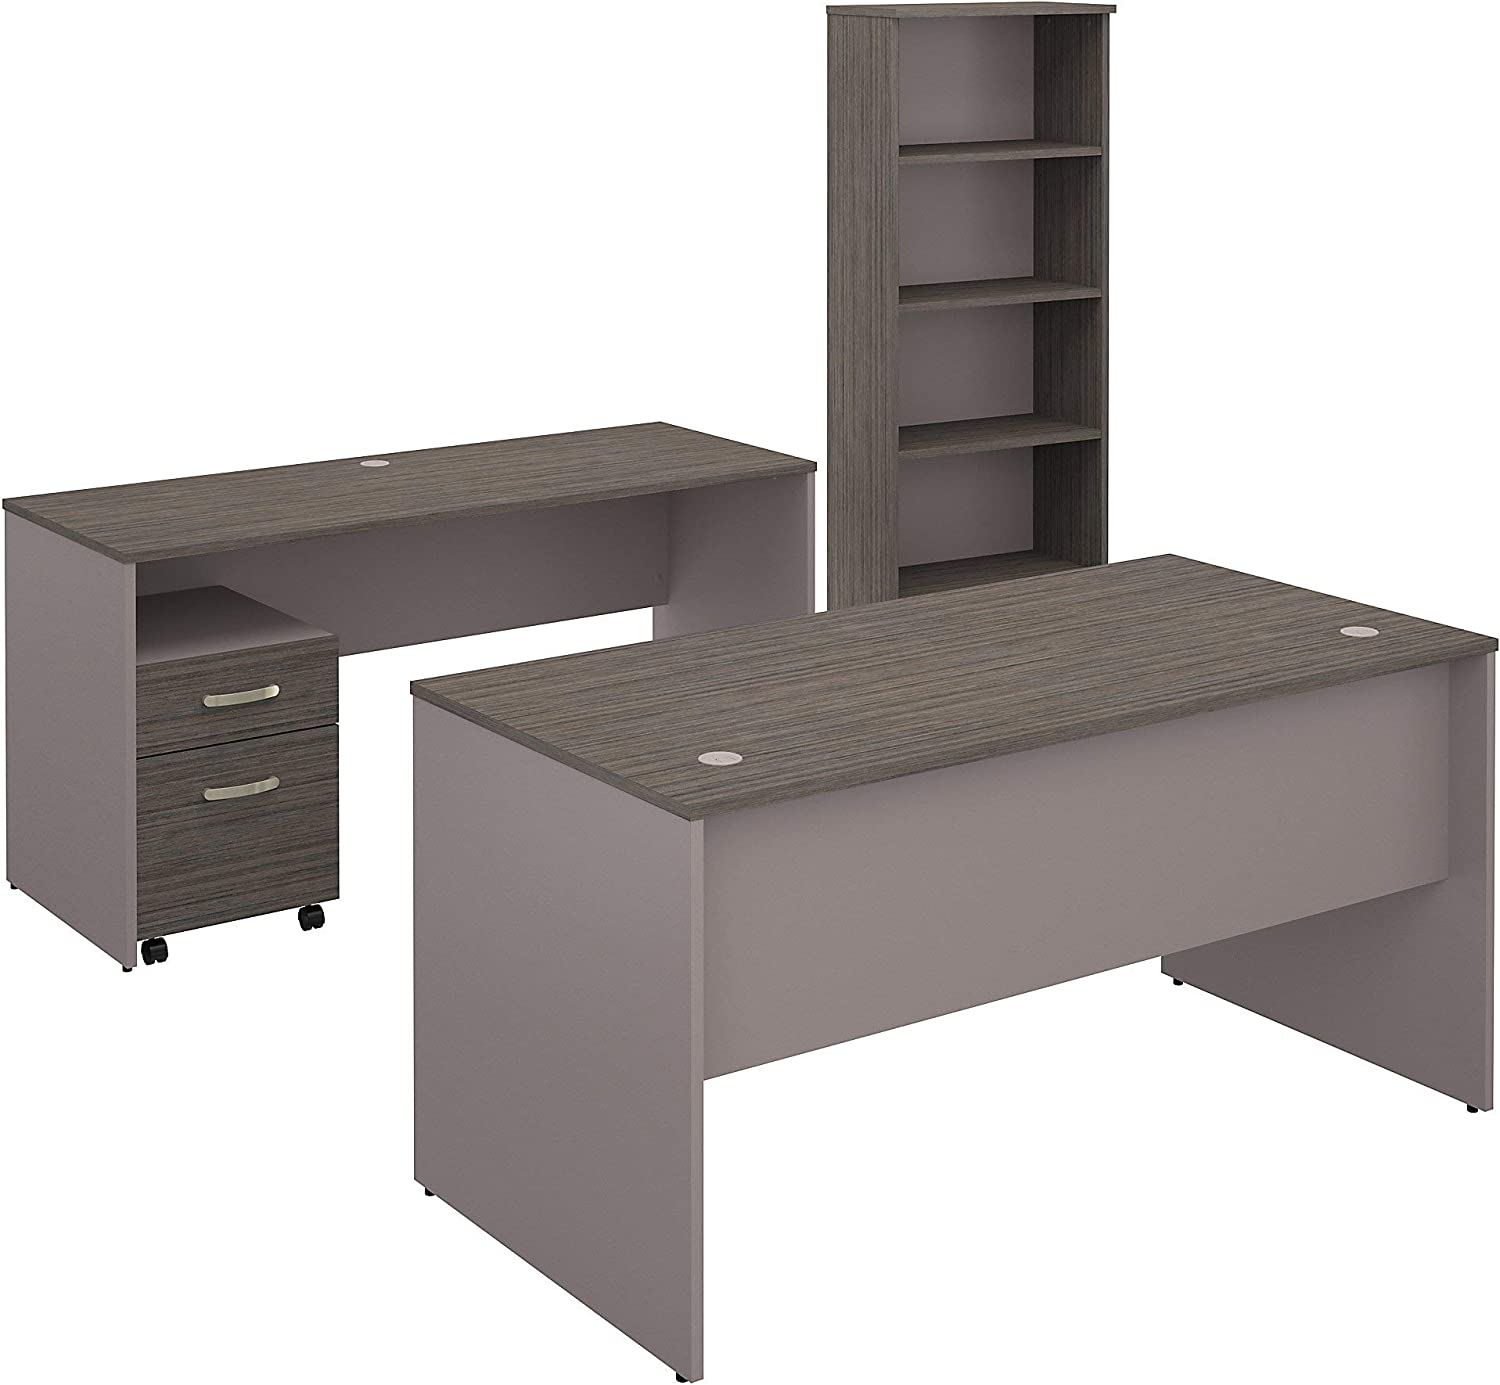 Bush Furniture Commerce 60W Office Fi Mobile New item Desk with Ranking TOP10 Credenza